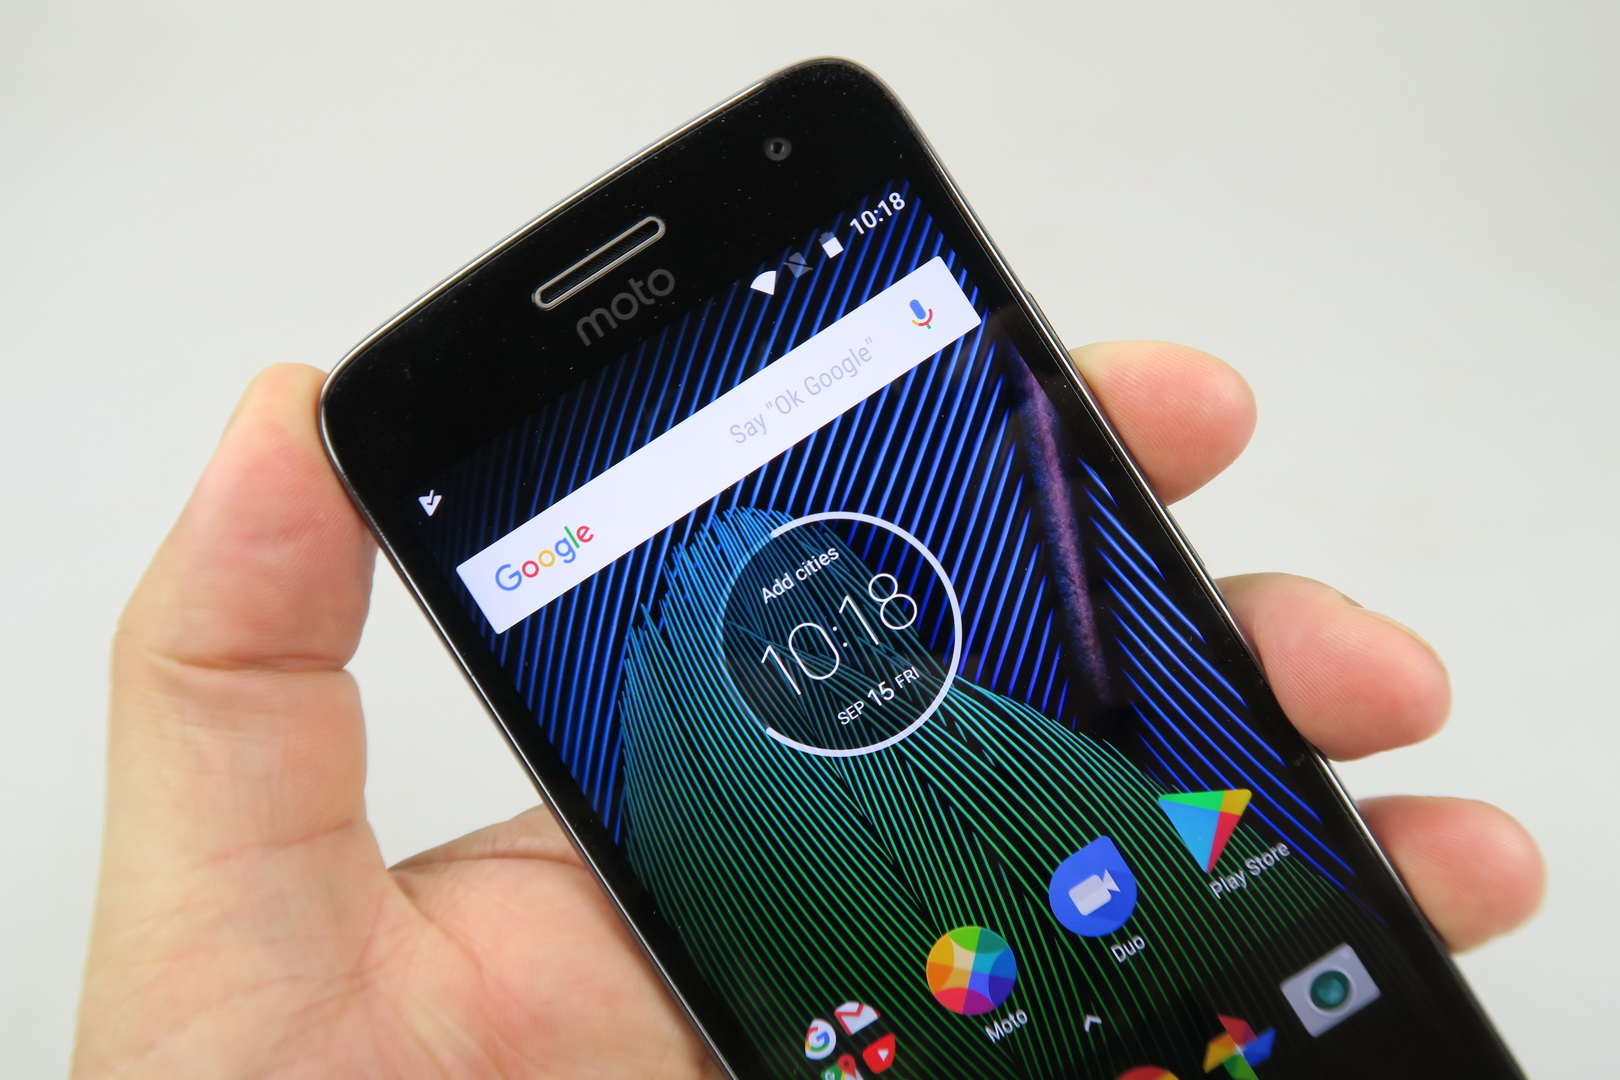 Motorola Moto G5 Plus Review: You Can Actually Feel the Progress From the Moto G5, Great With ...